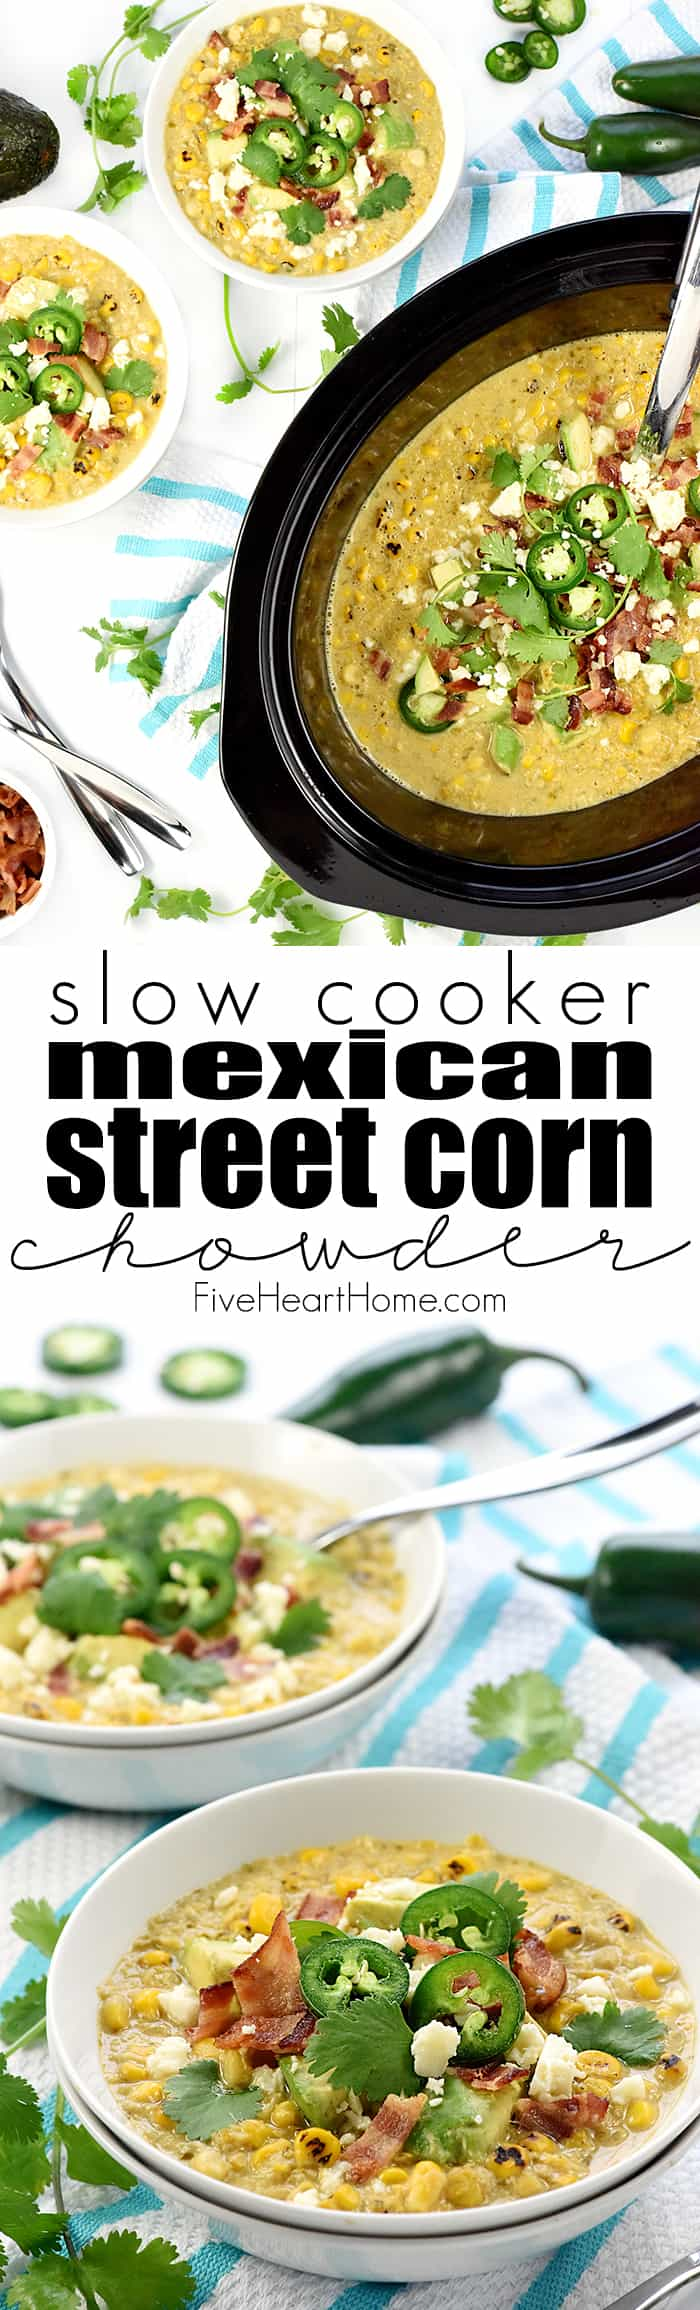 Slow Cooker Mexican Street Corn Chowder Collage with Text Overlay